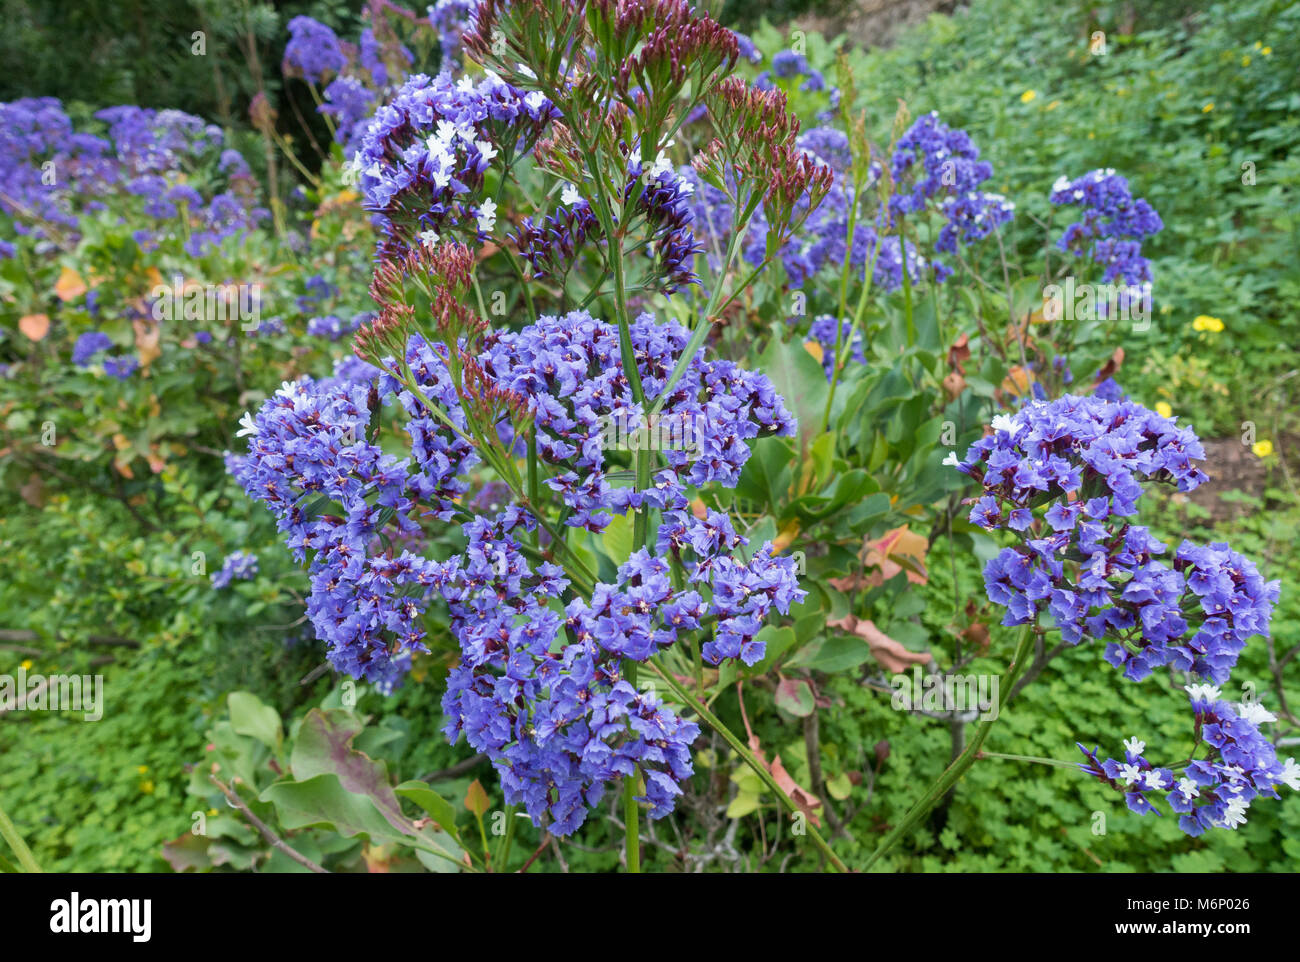 Limonium Sventenii is a critically endangered plant only found on Gran Canaria in the Canary Islands. Spain - Stock Image